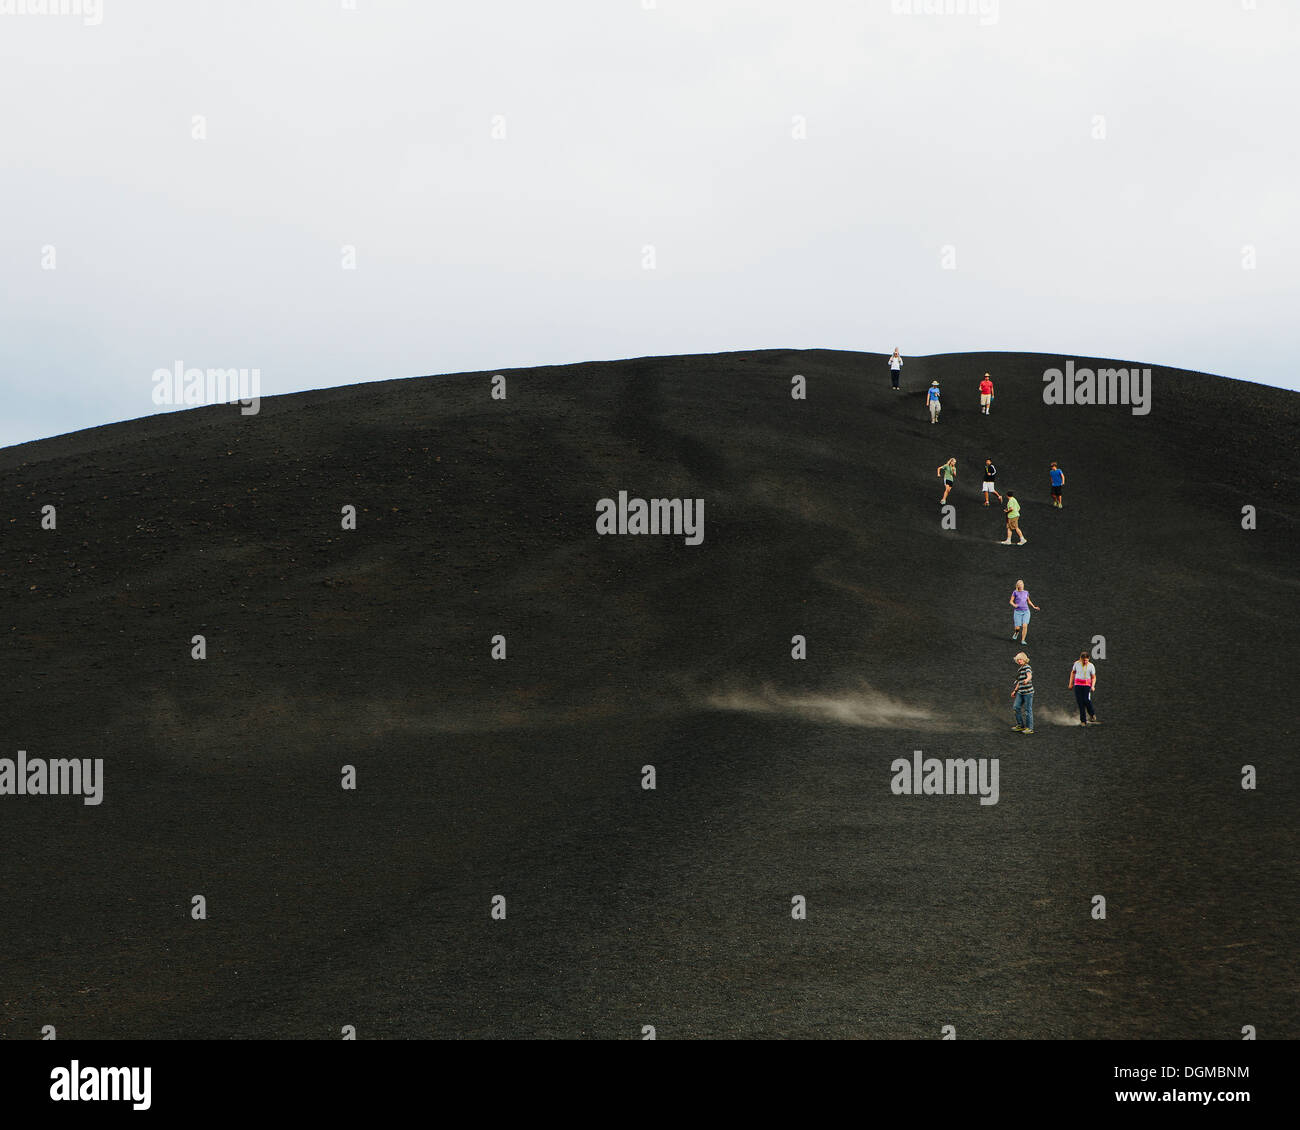 A black volcanic cone hillside in Craters of Moon national monument preserve in Butte County Idaho People walking on slope. - Stock Image